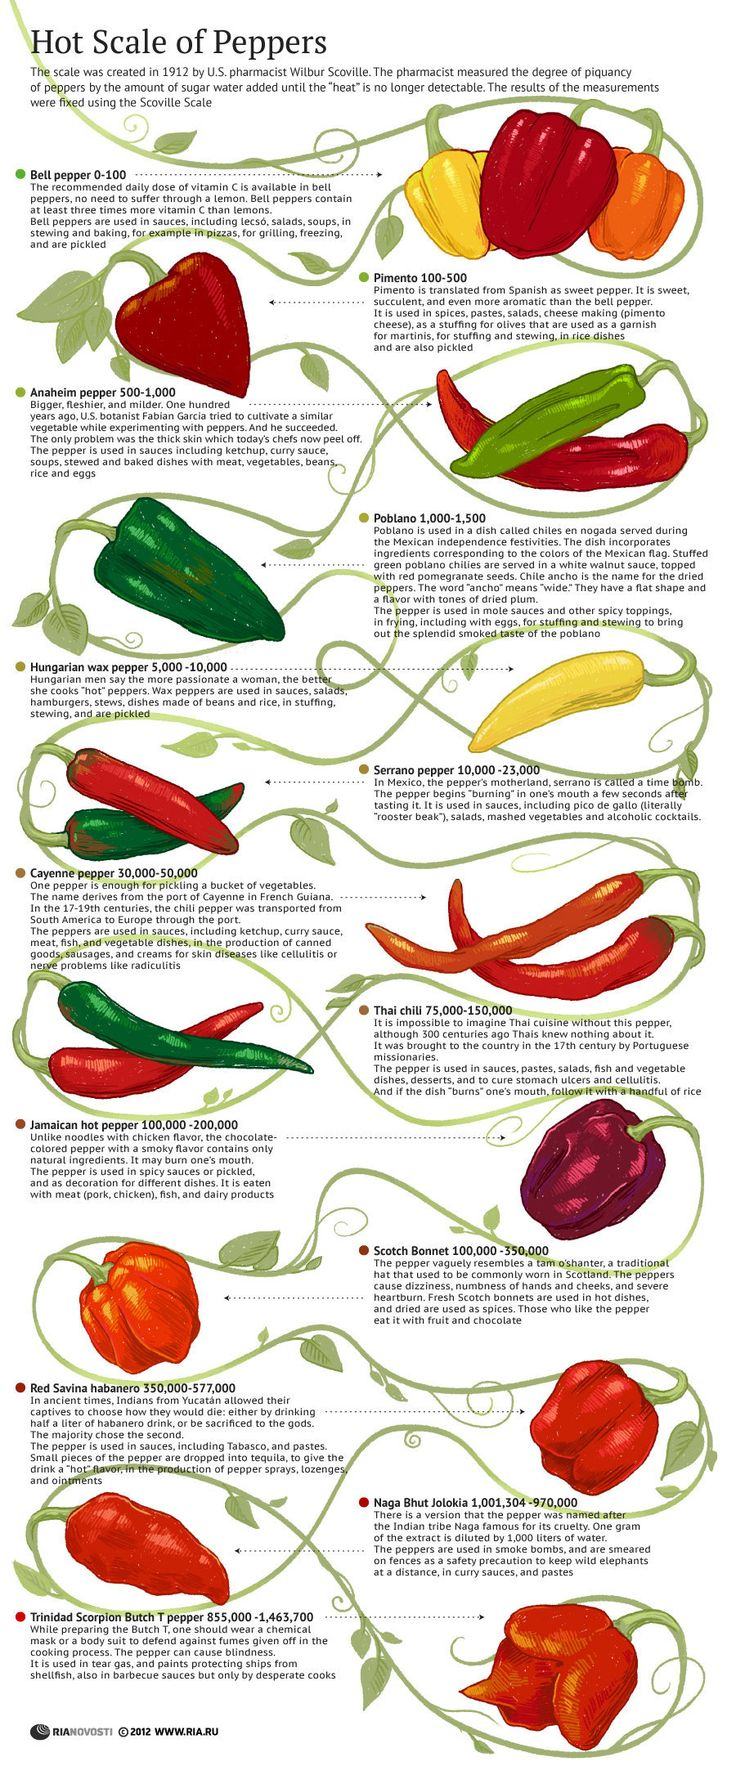 Hot Scale of Peppers